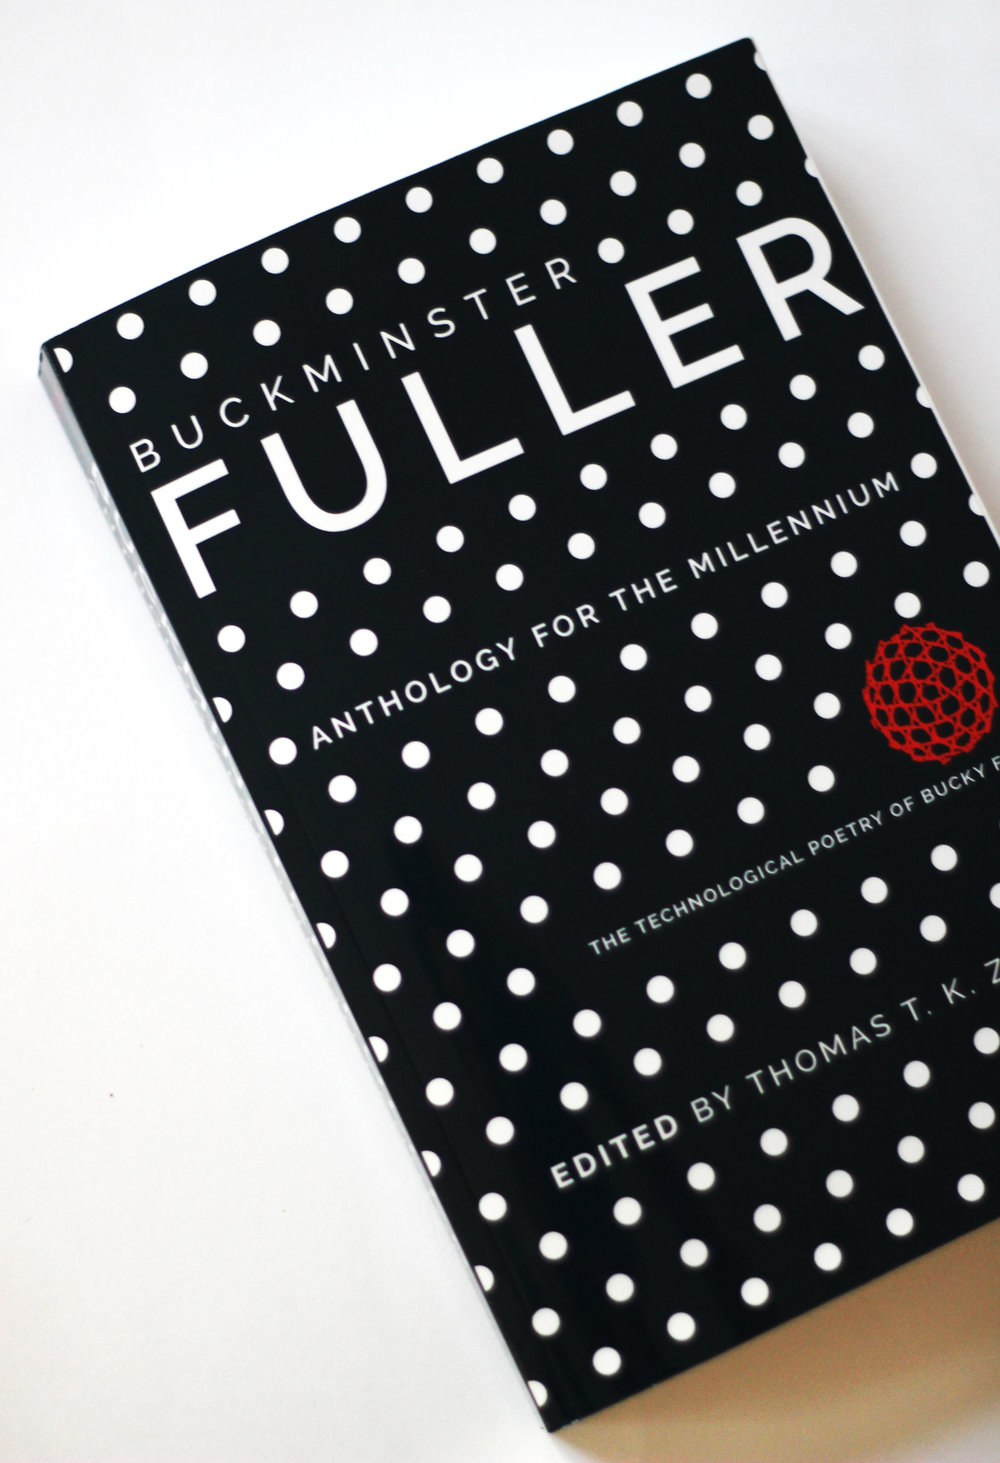 Buckminster Bucky Fuller Book architecture geodesic dome   graphic design book cover